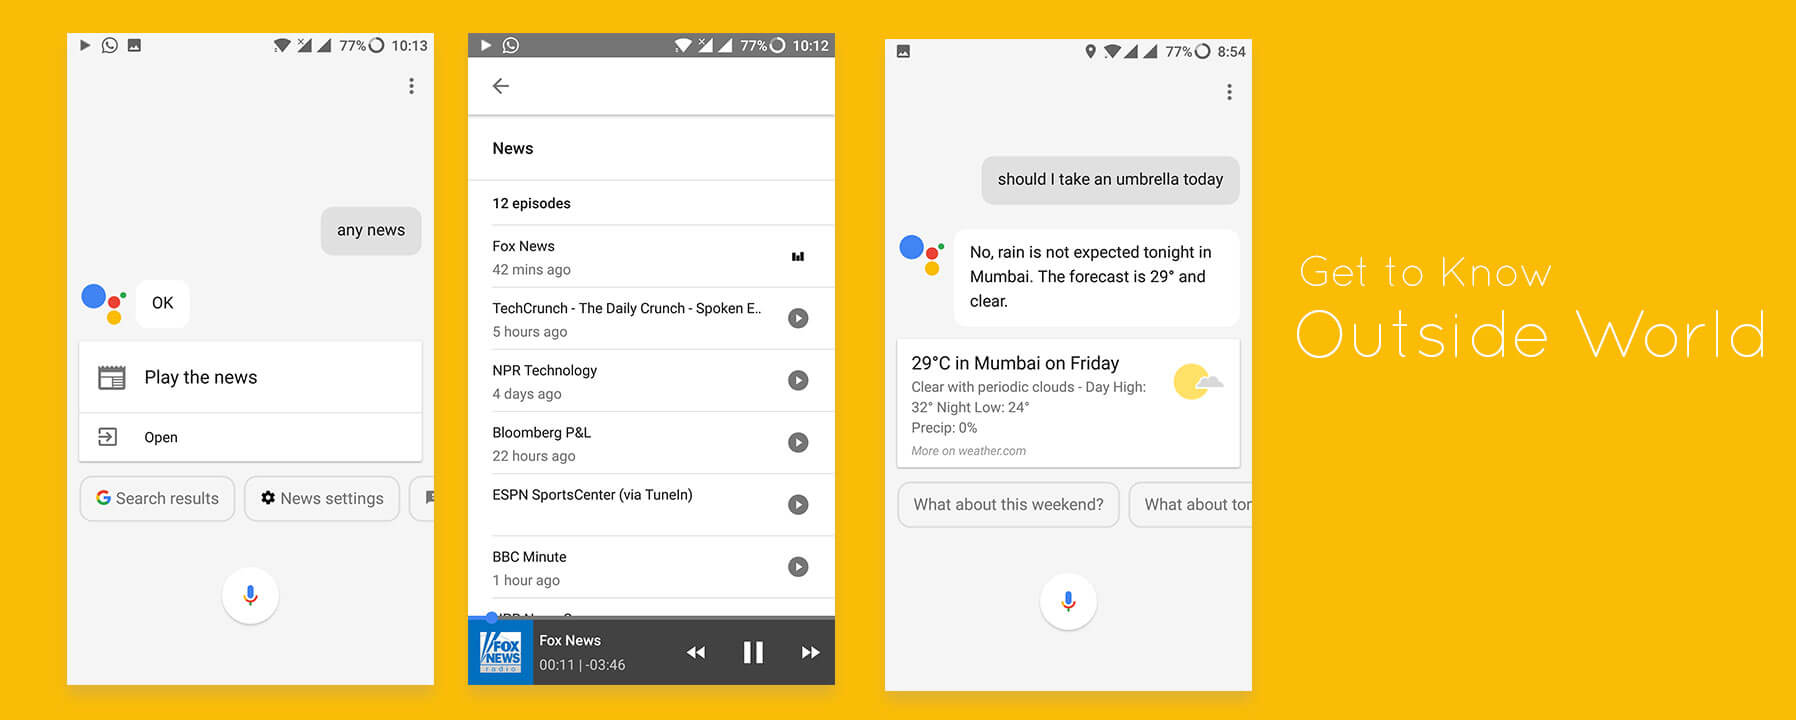 Get to Know about Outside world through Google Assistant